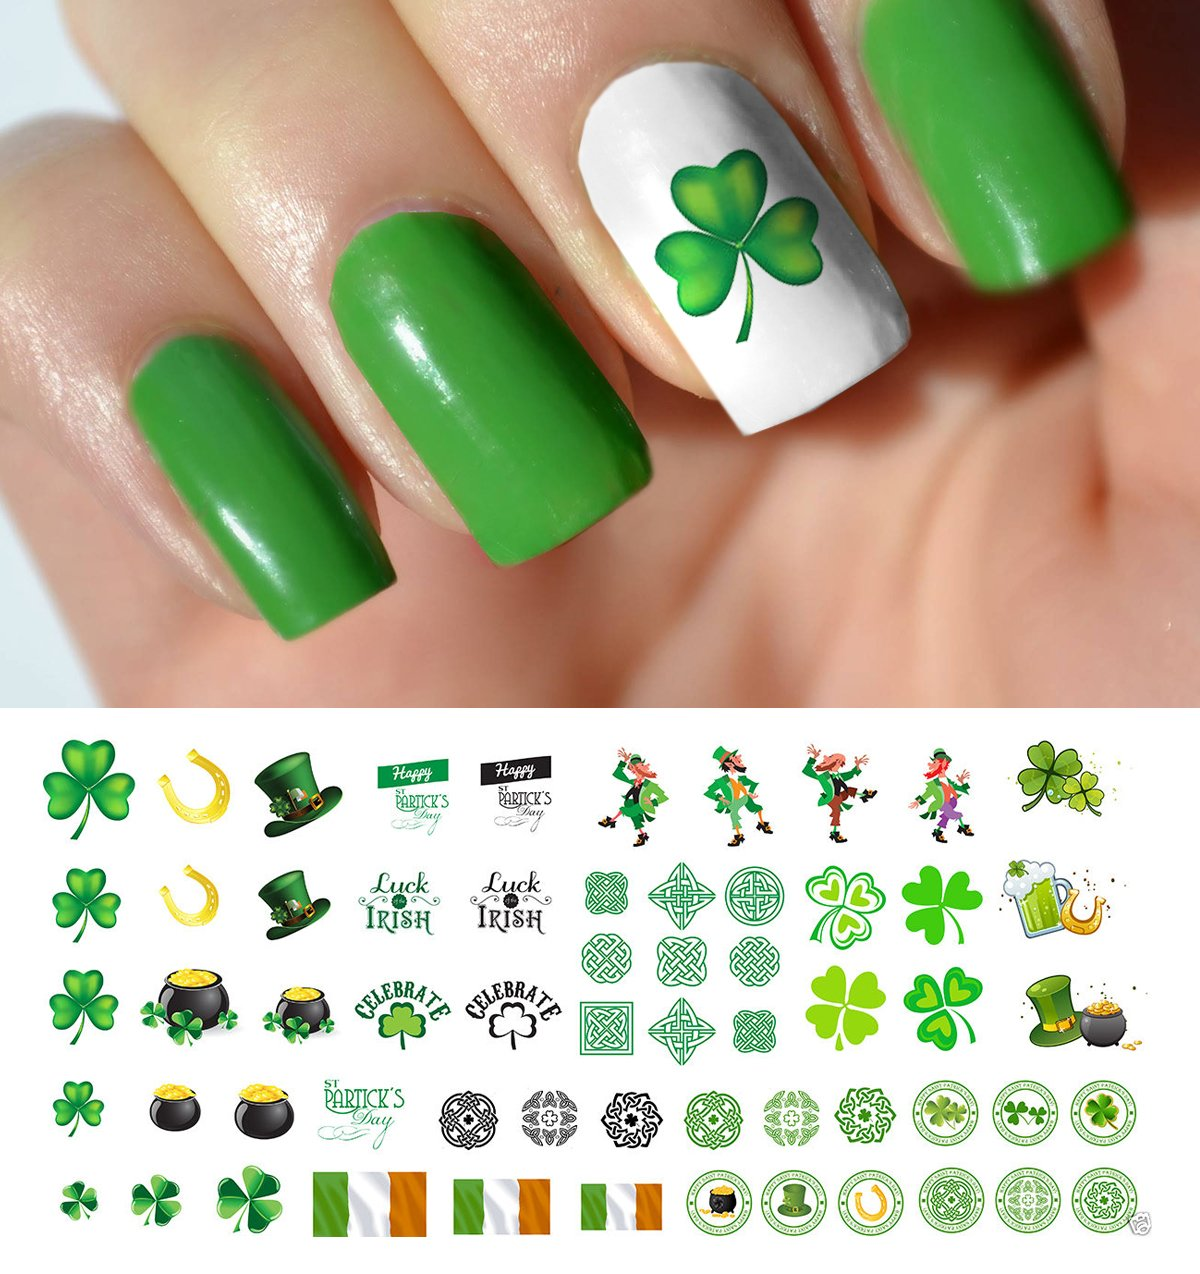 Amazon.com: Easter Nail Decals Assortment #1 Water Slide Nail Art ...